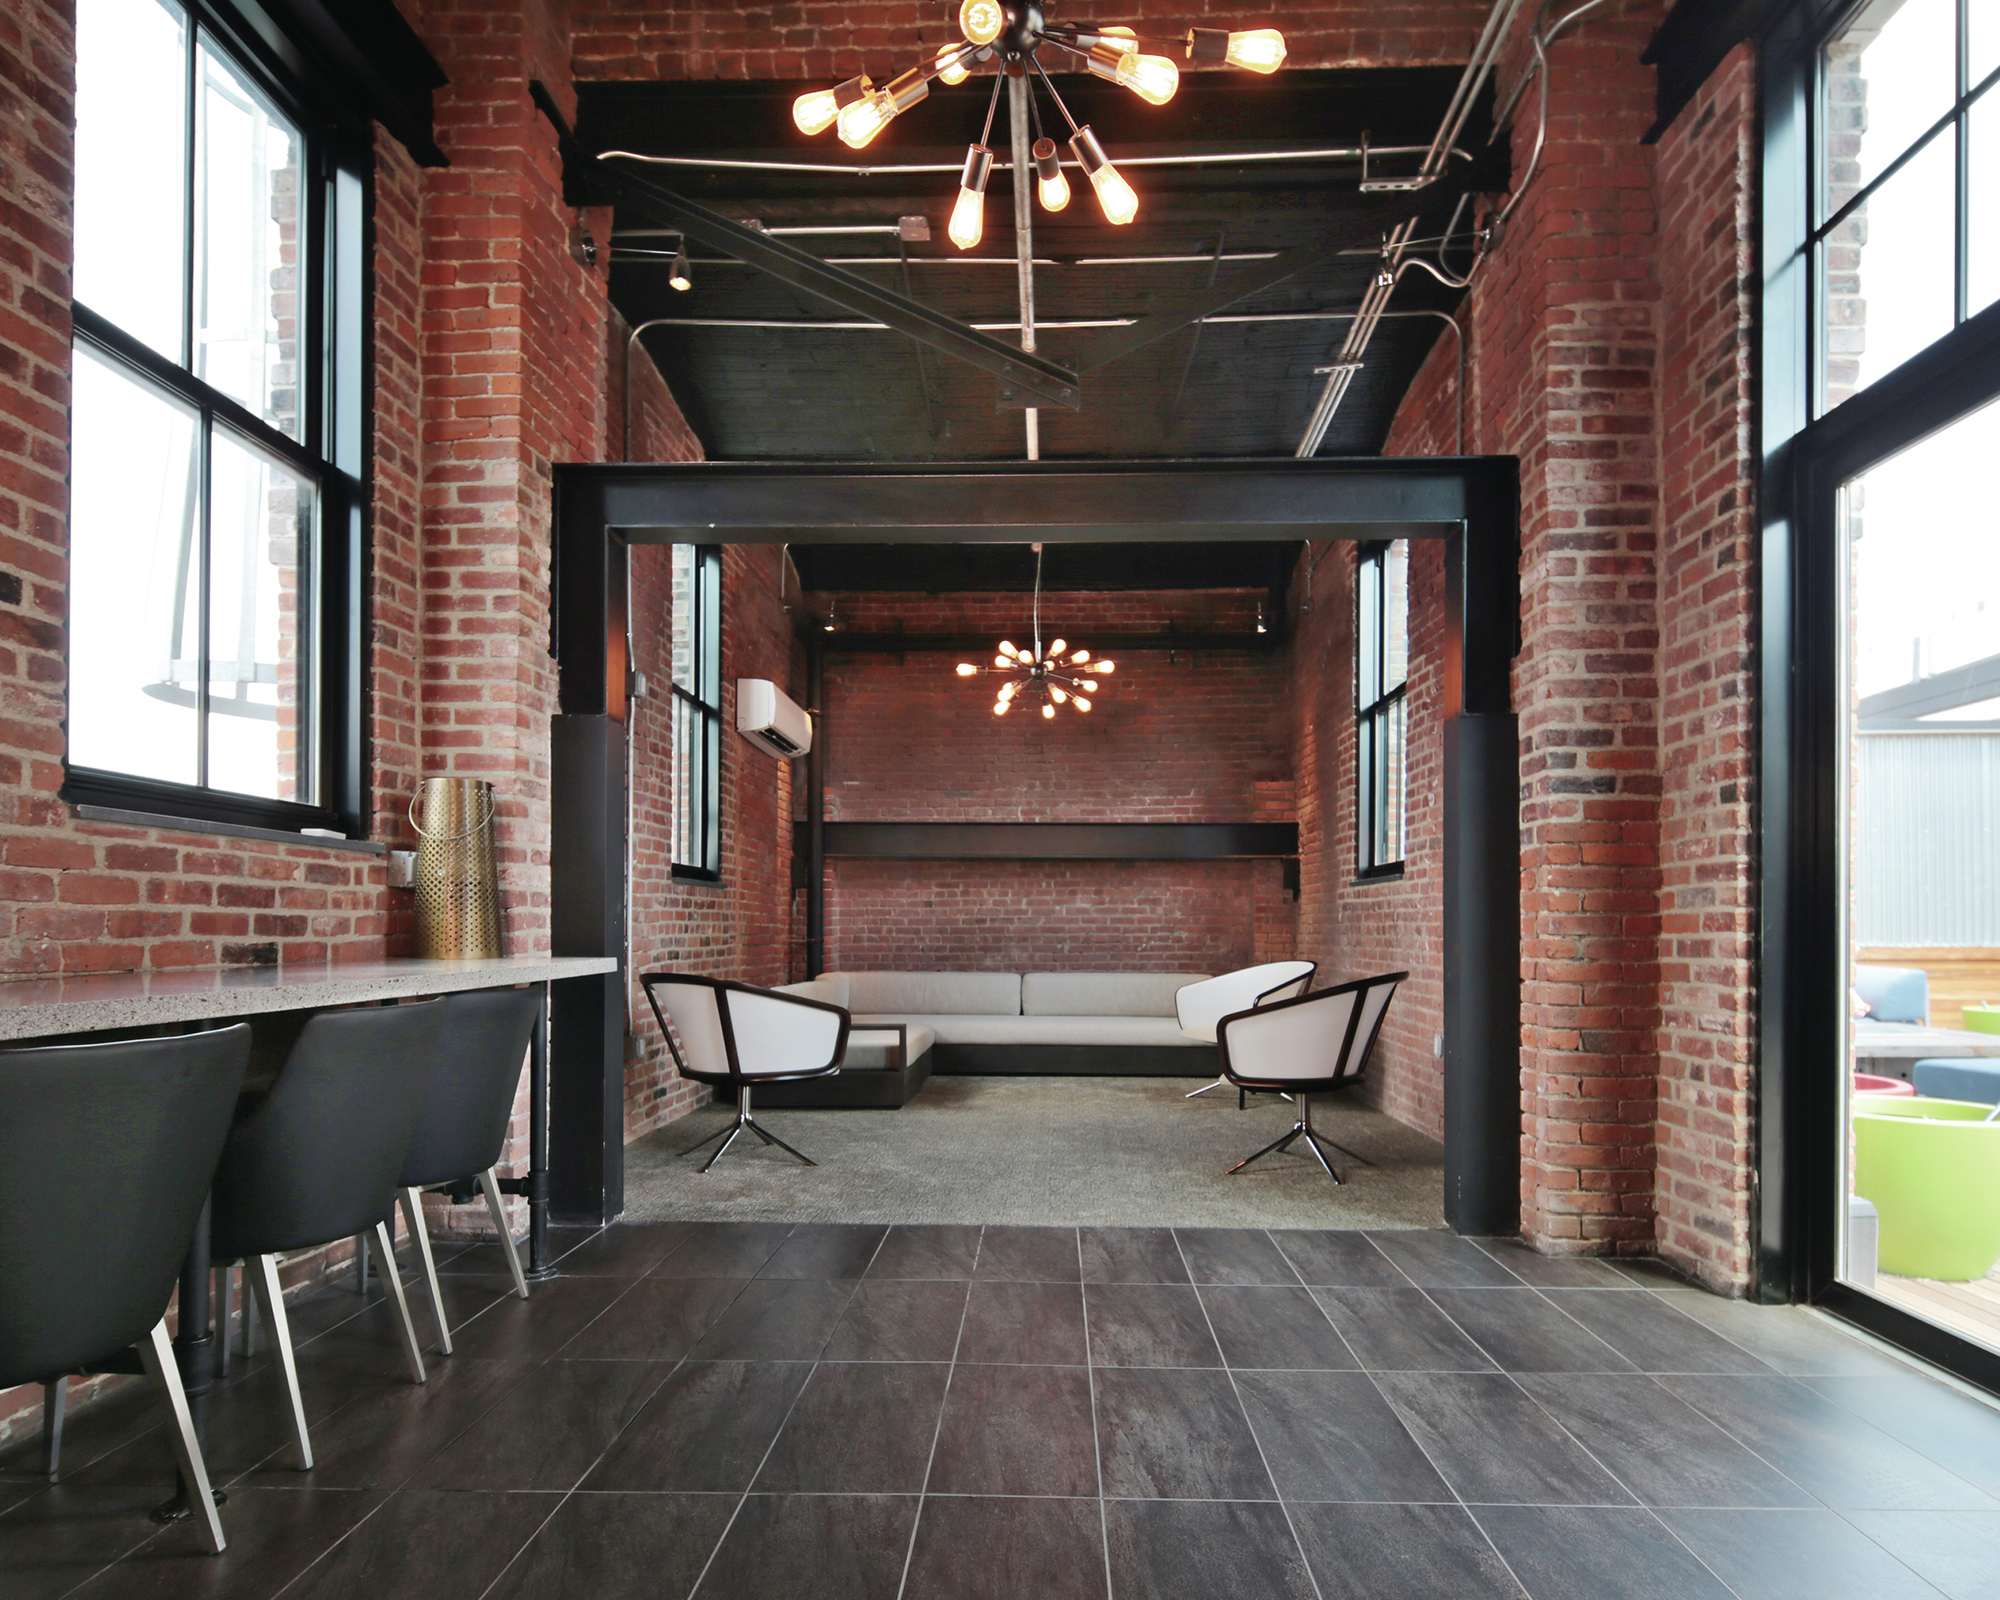 Loft Style Units Characterize This Revamped Warehouse